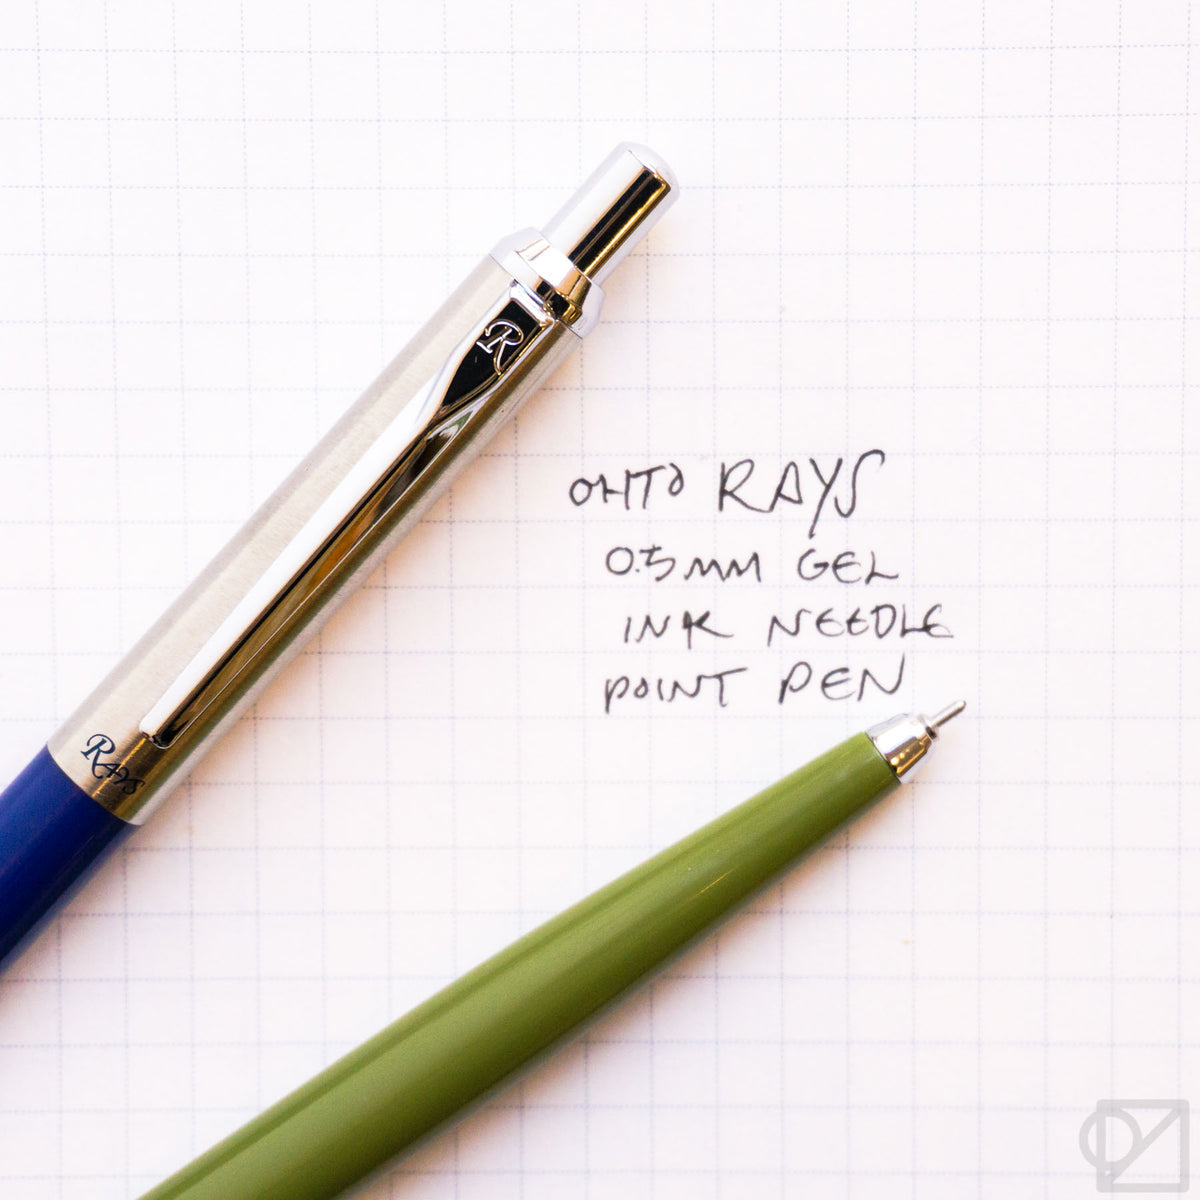 OHTO Rays Flash Dry 0.5mm Gel Pen